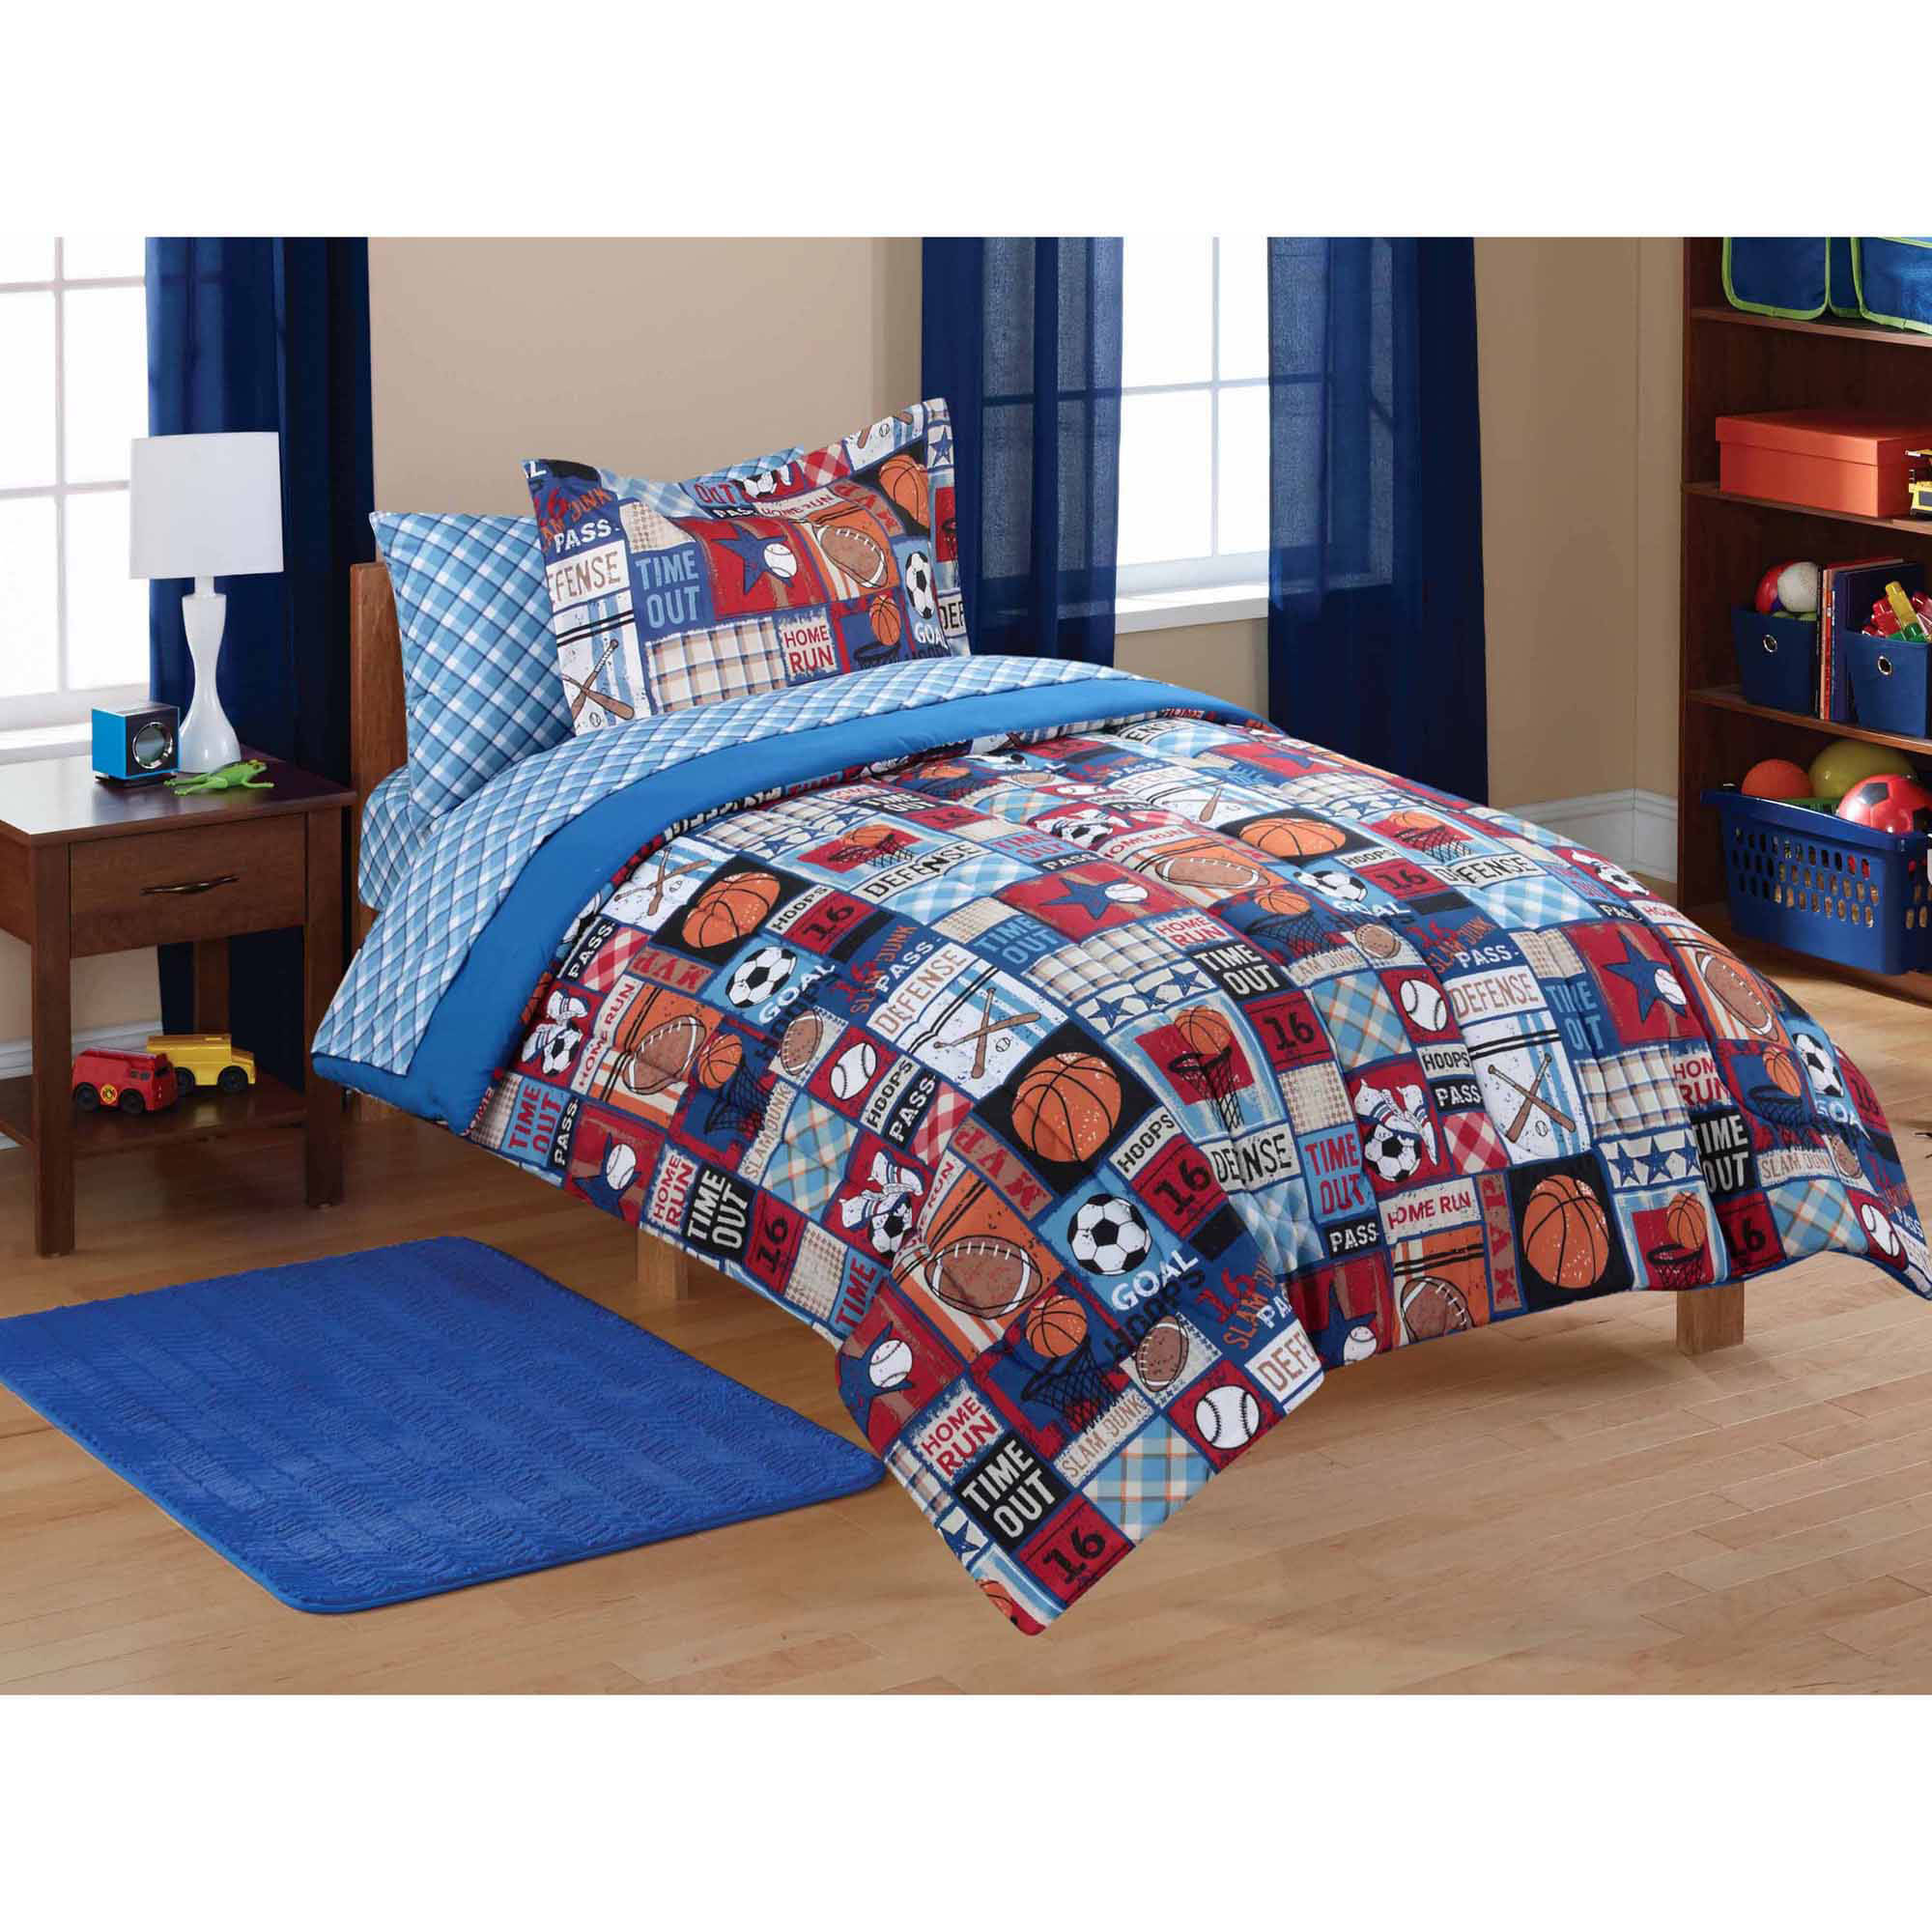 Mainstays Kidsu0027 Sports Patch Coordinated Bed In A Bag   Walmart.com